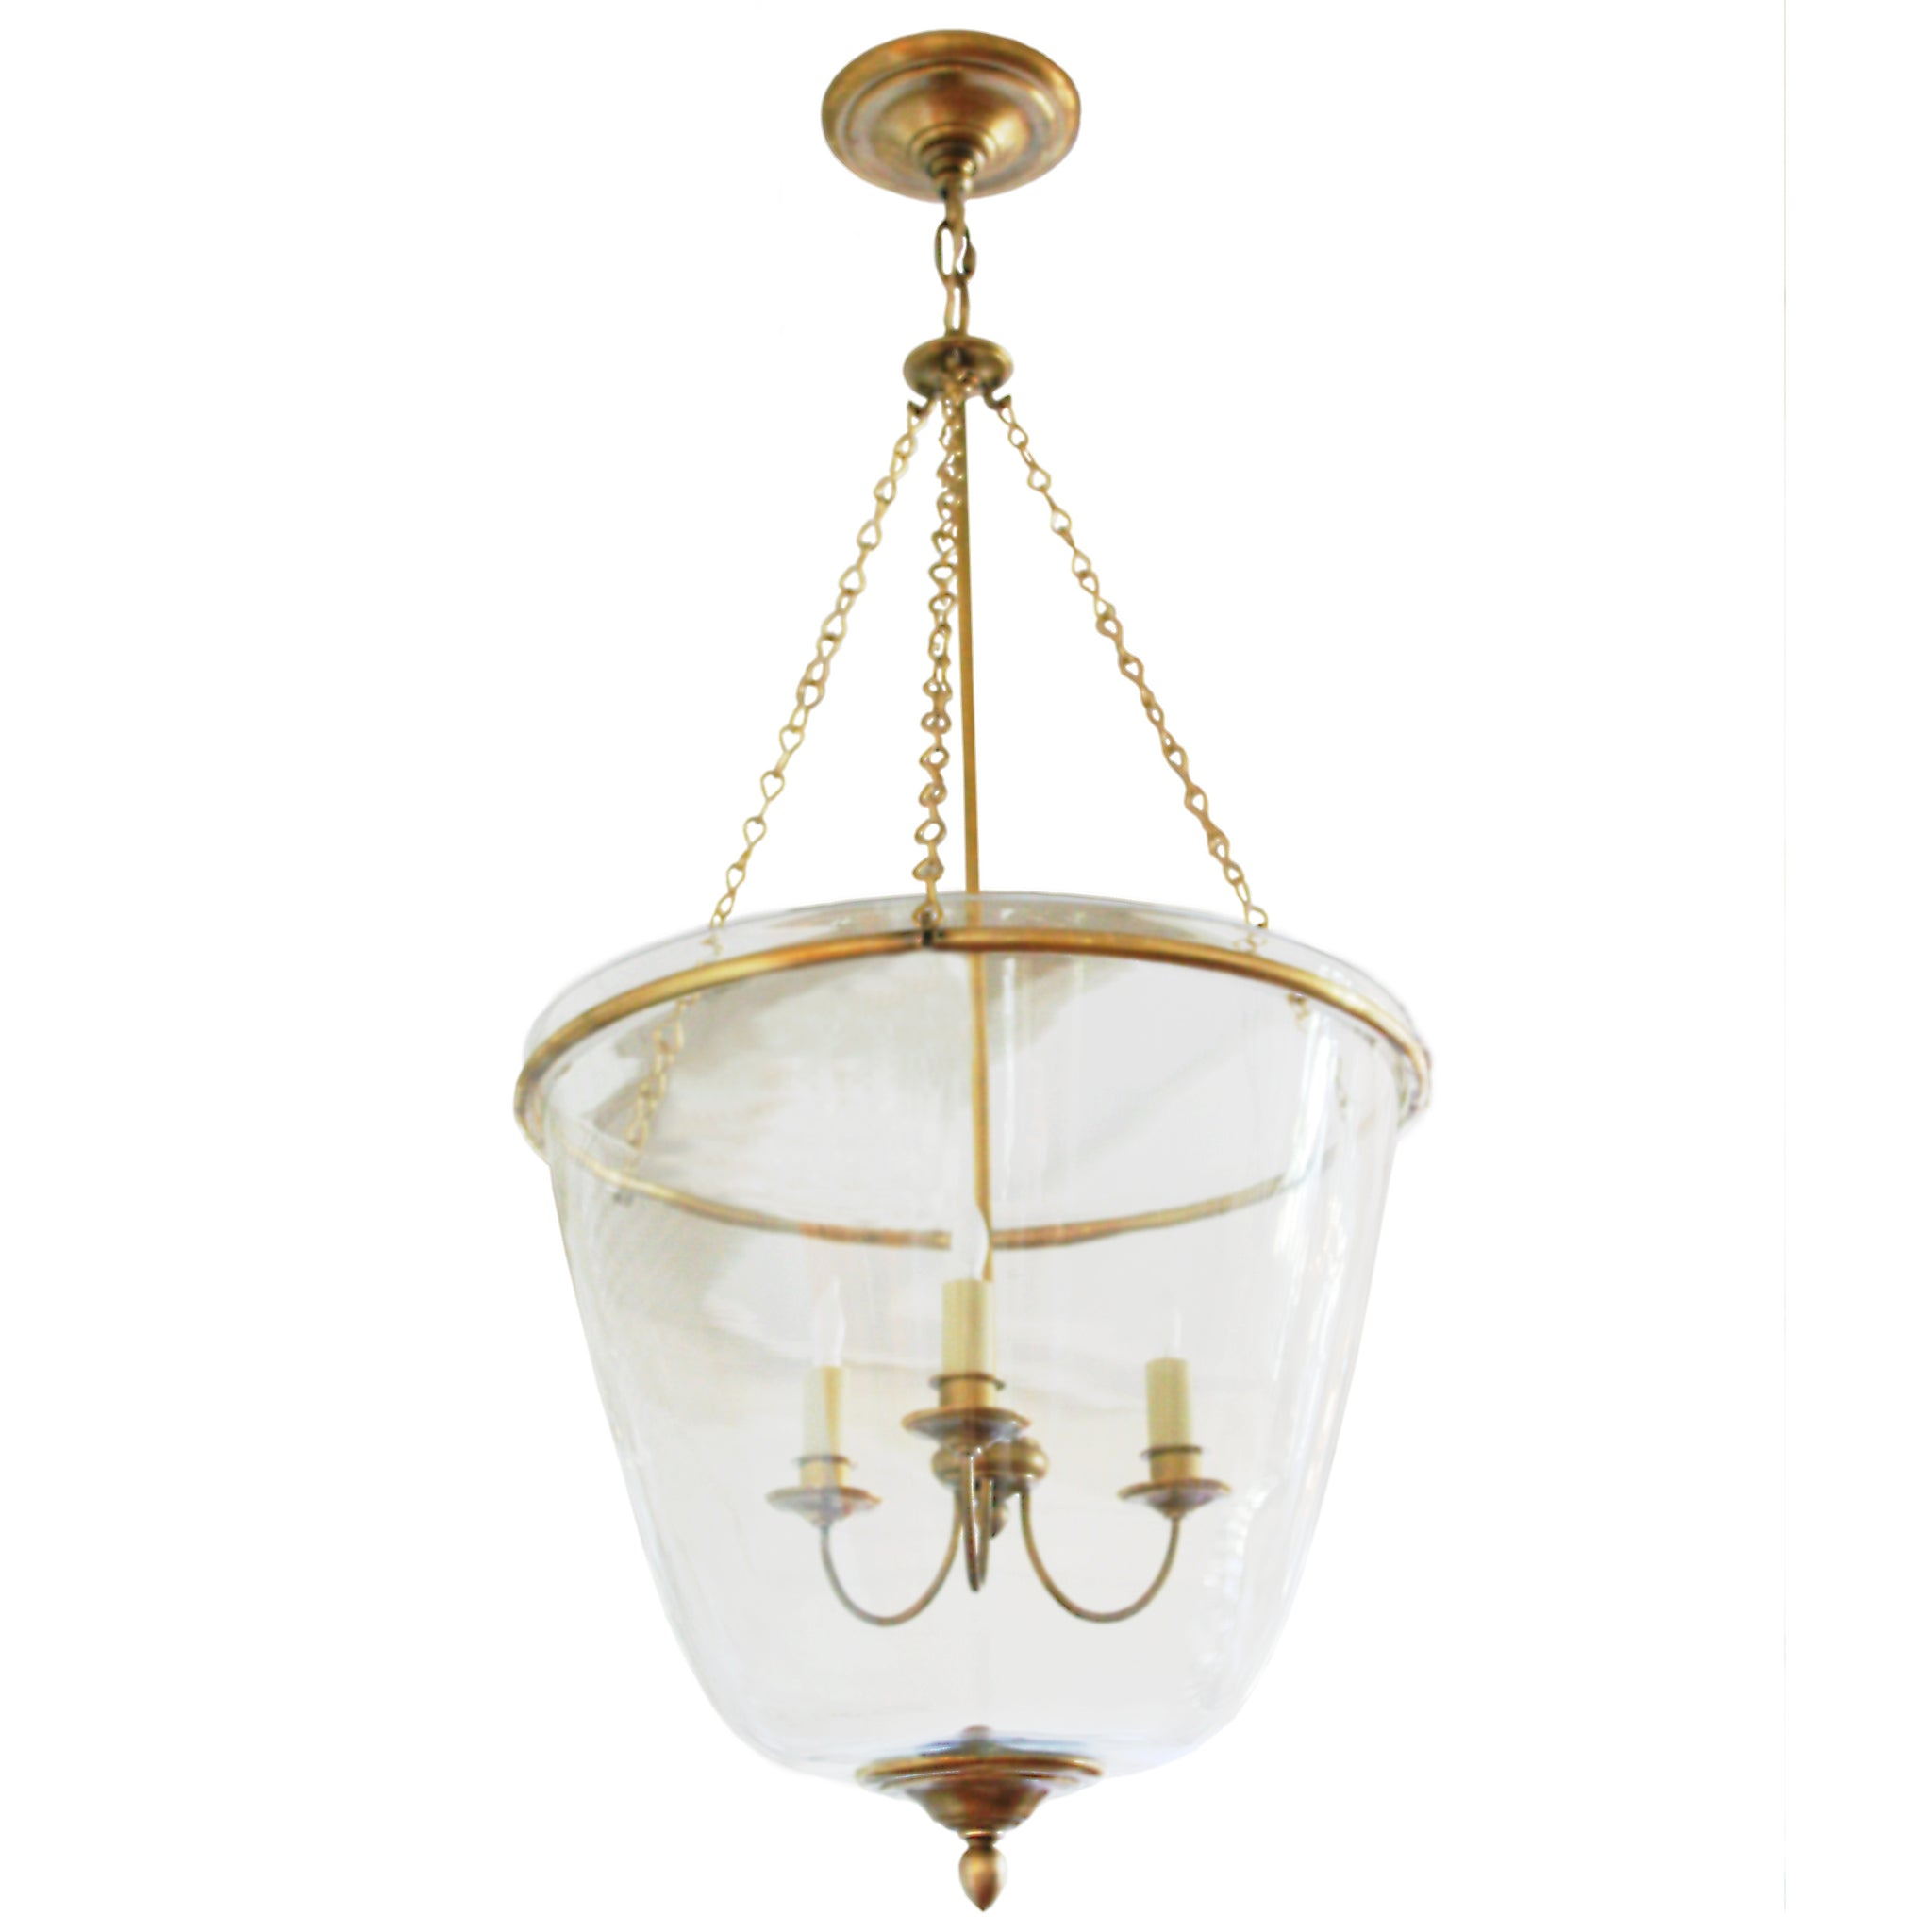 Pondview medium jar lantern in hand rubbed antique brass